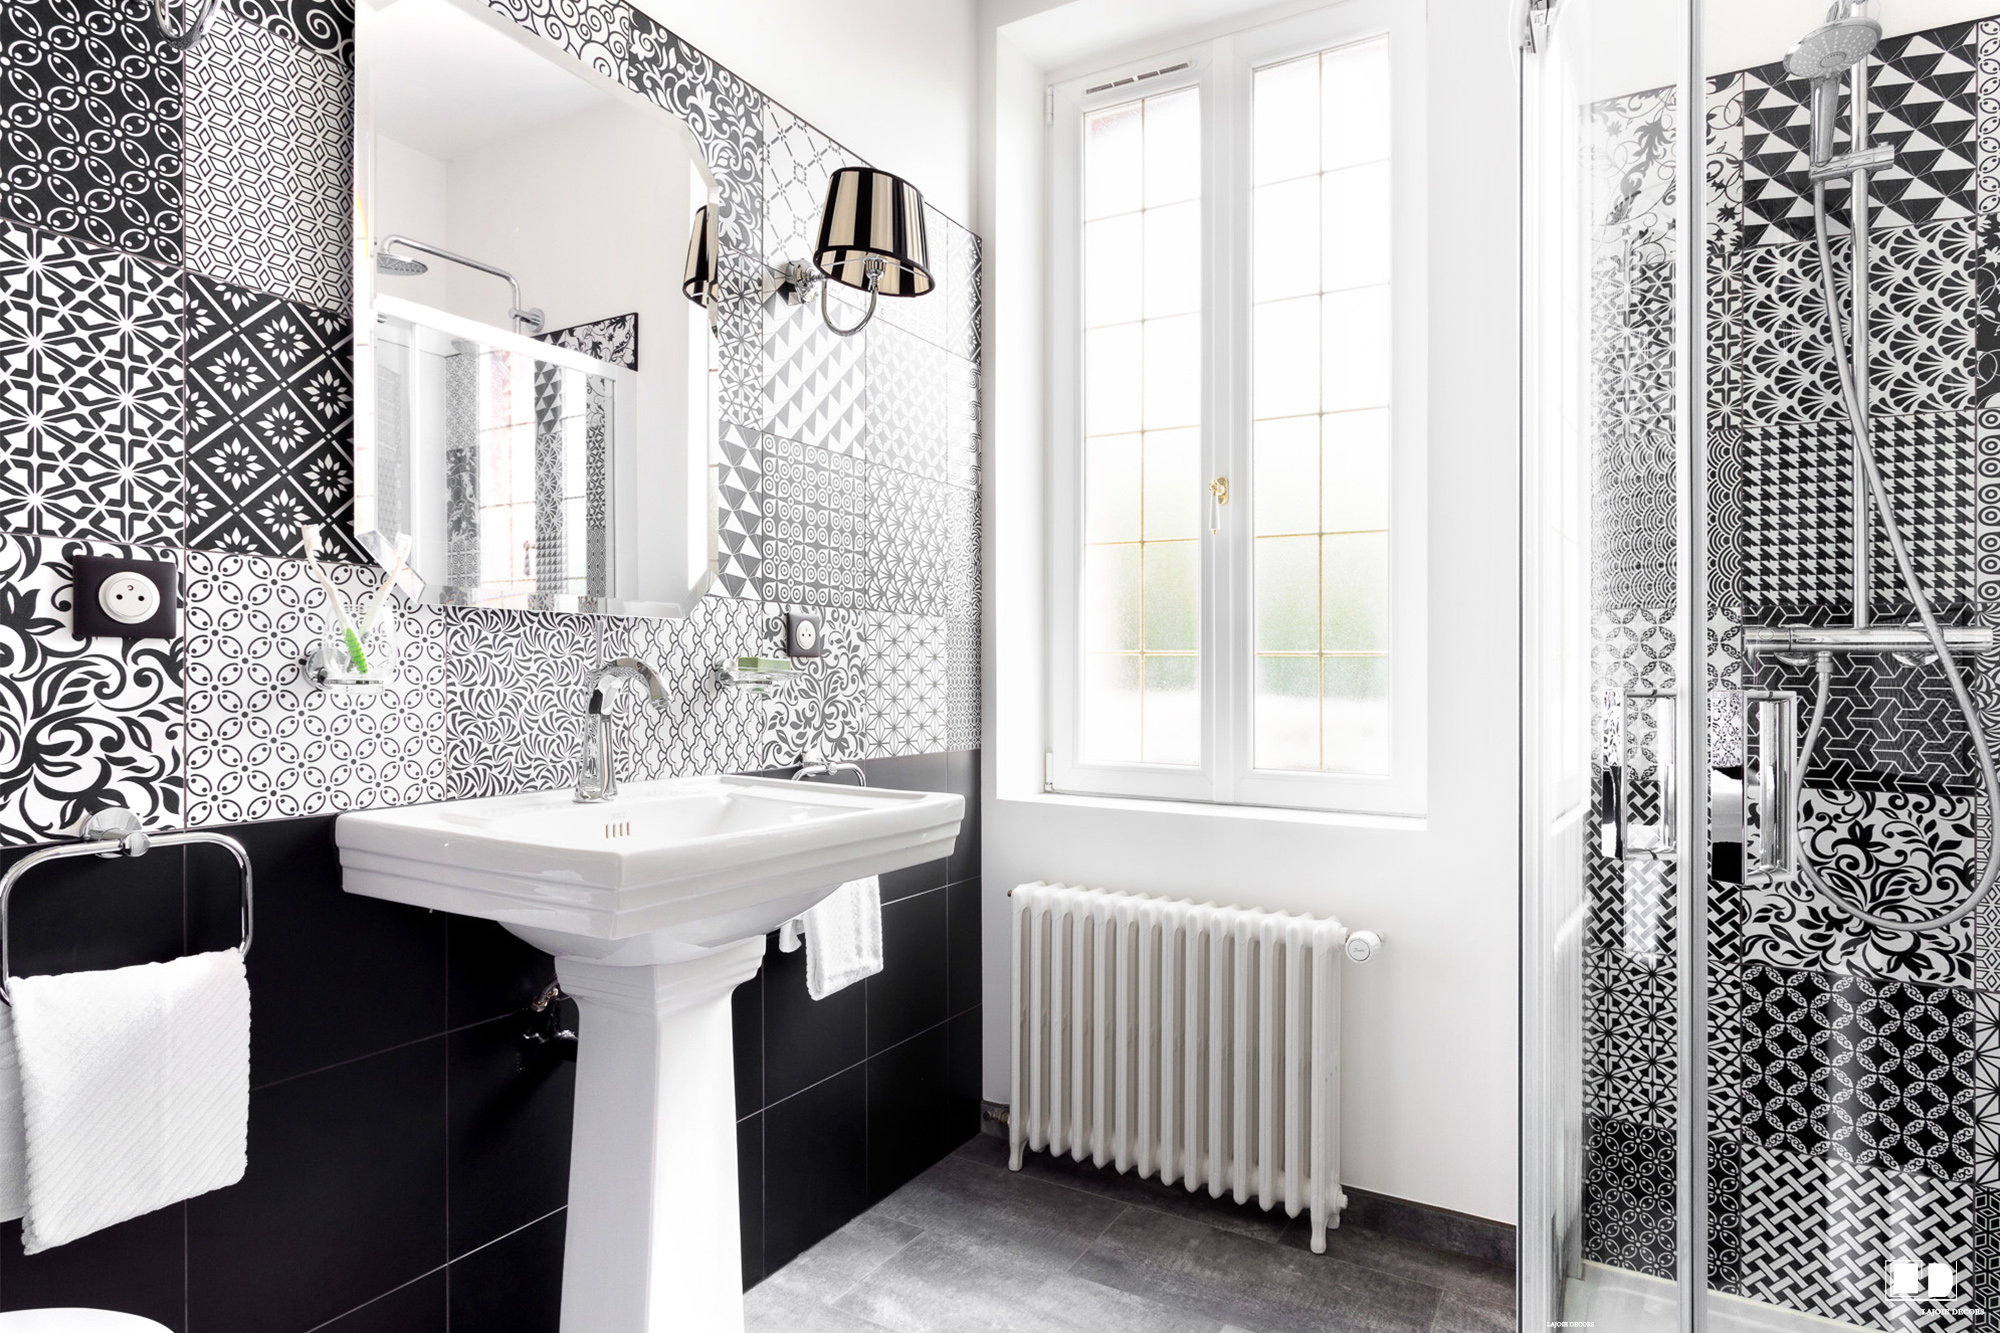 salle de bain style art d co st just en chauss e lajoie d cors. Black Bedroom Furniture Sets. Home Design Ideas